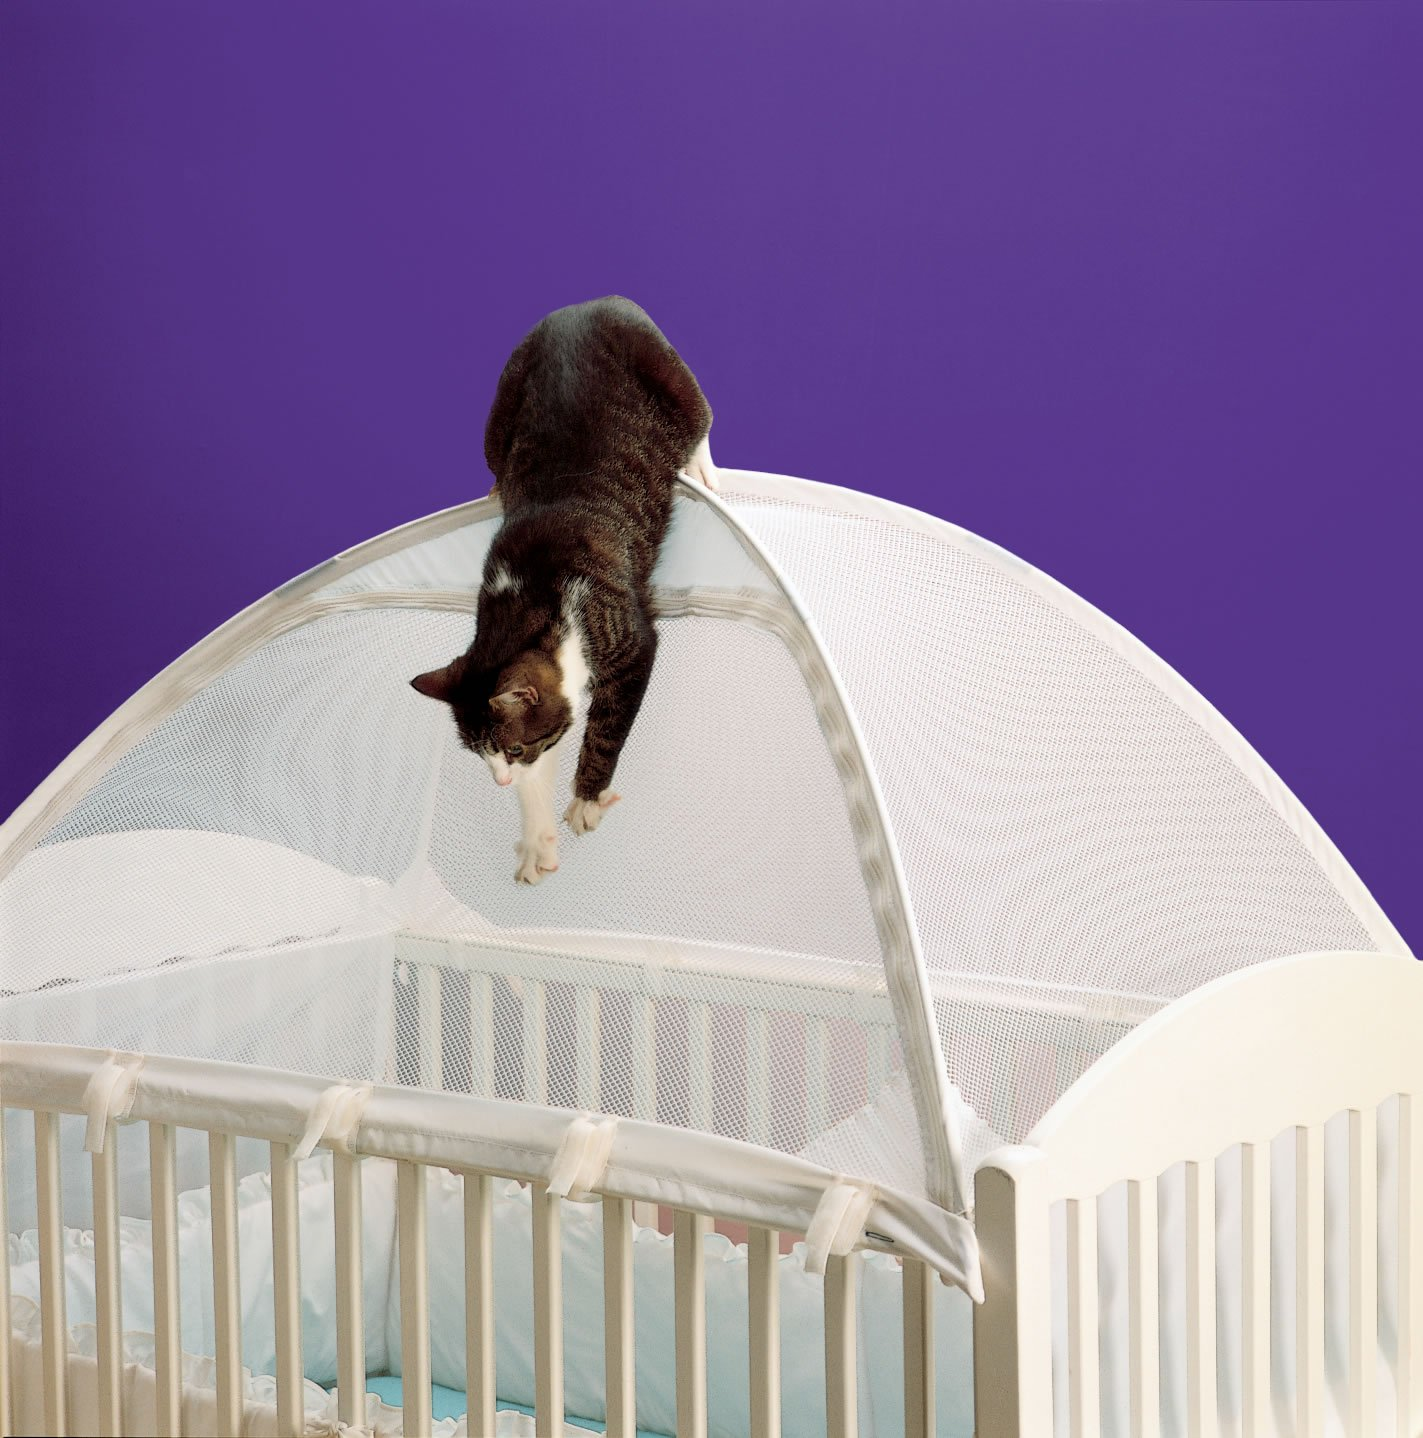 Net To Keep Cats Out Of Crib